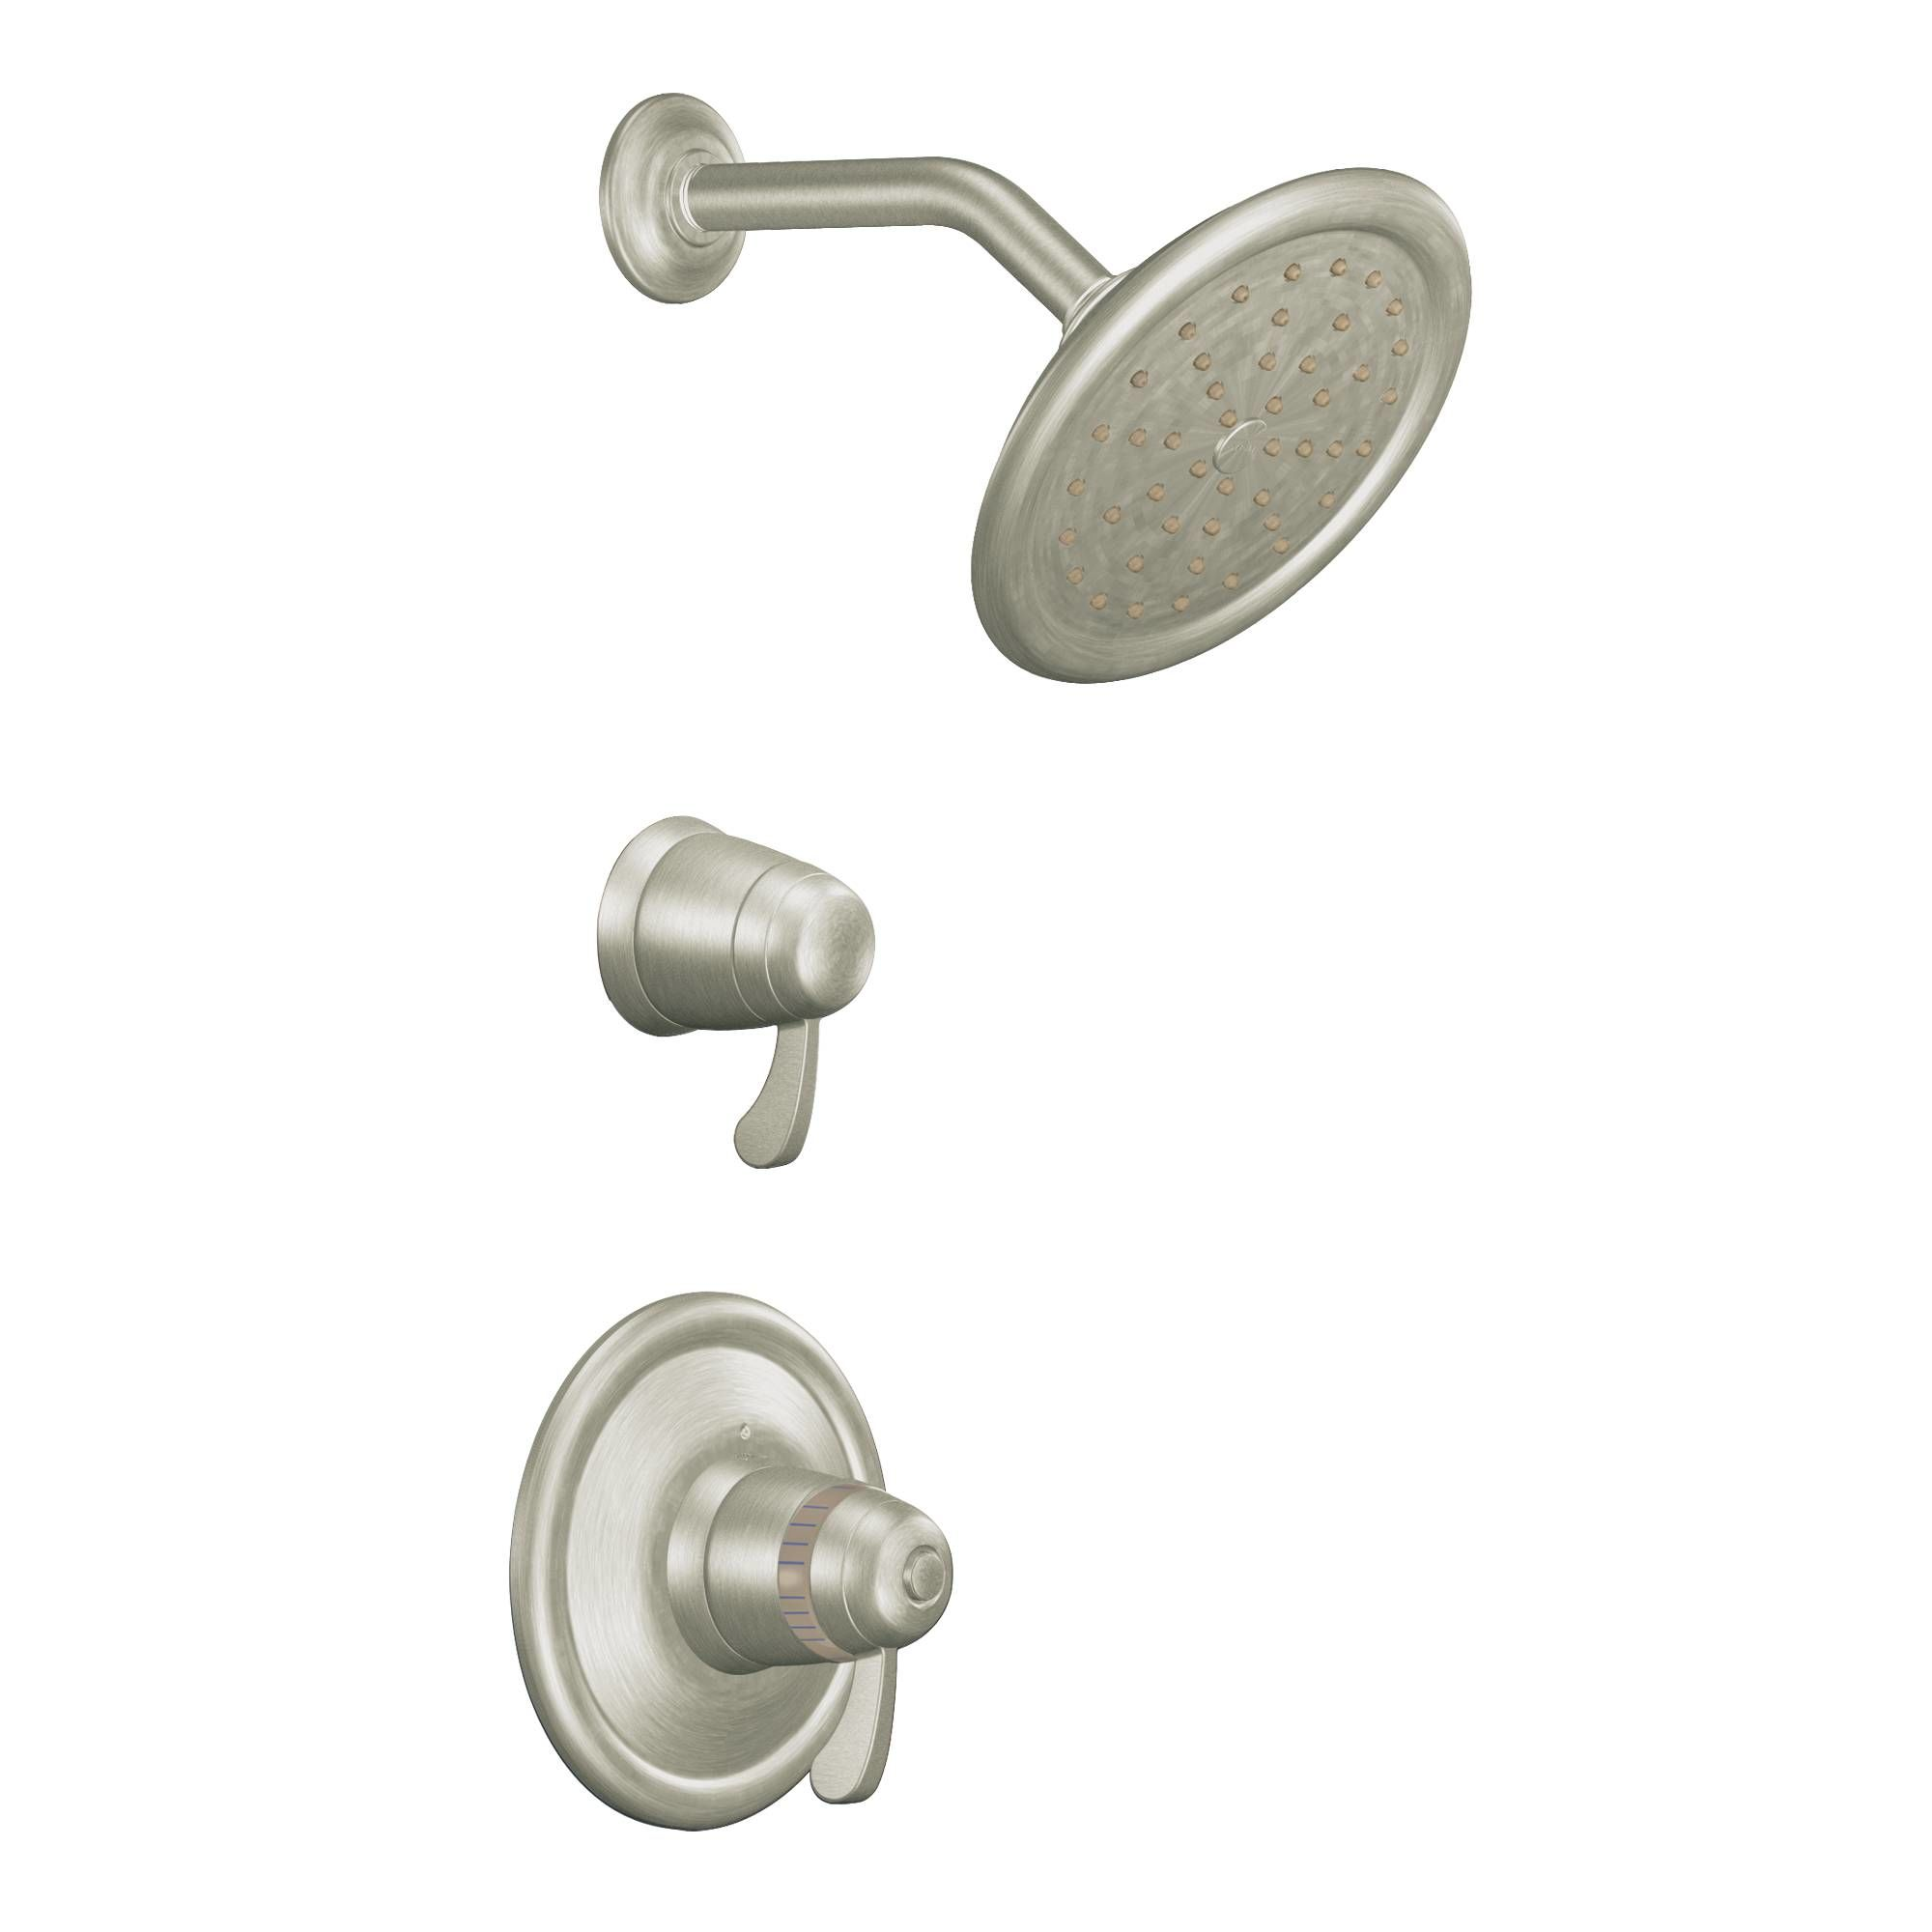 single the handle eva less brushed collection balanced moen performance posi from eco faucet with pressure temp nickel shower head tub trim and